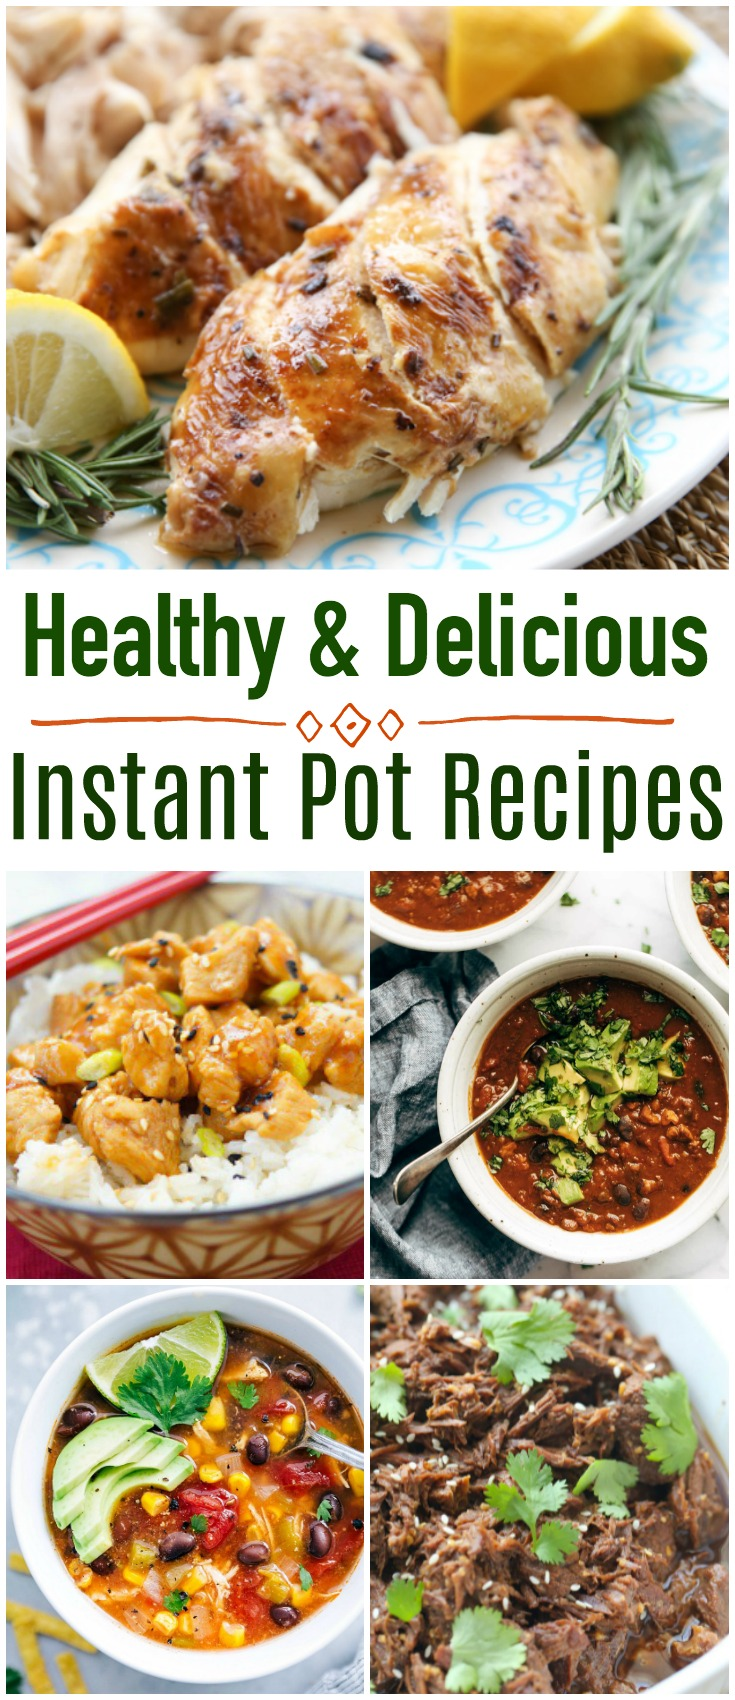 Did you recently buy an Instant Pot? it's a wonderful appliance to help you save money and eat better. Here are 20 Healthy and Delicious Instant Pot recipes you will want to keep handy! #InstantPot #PressureCooker #healthyrecipes #easyrecipes